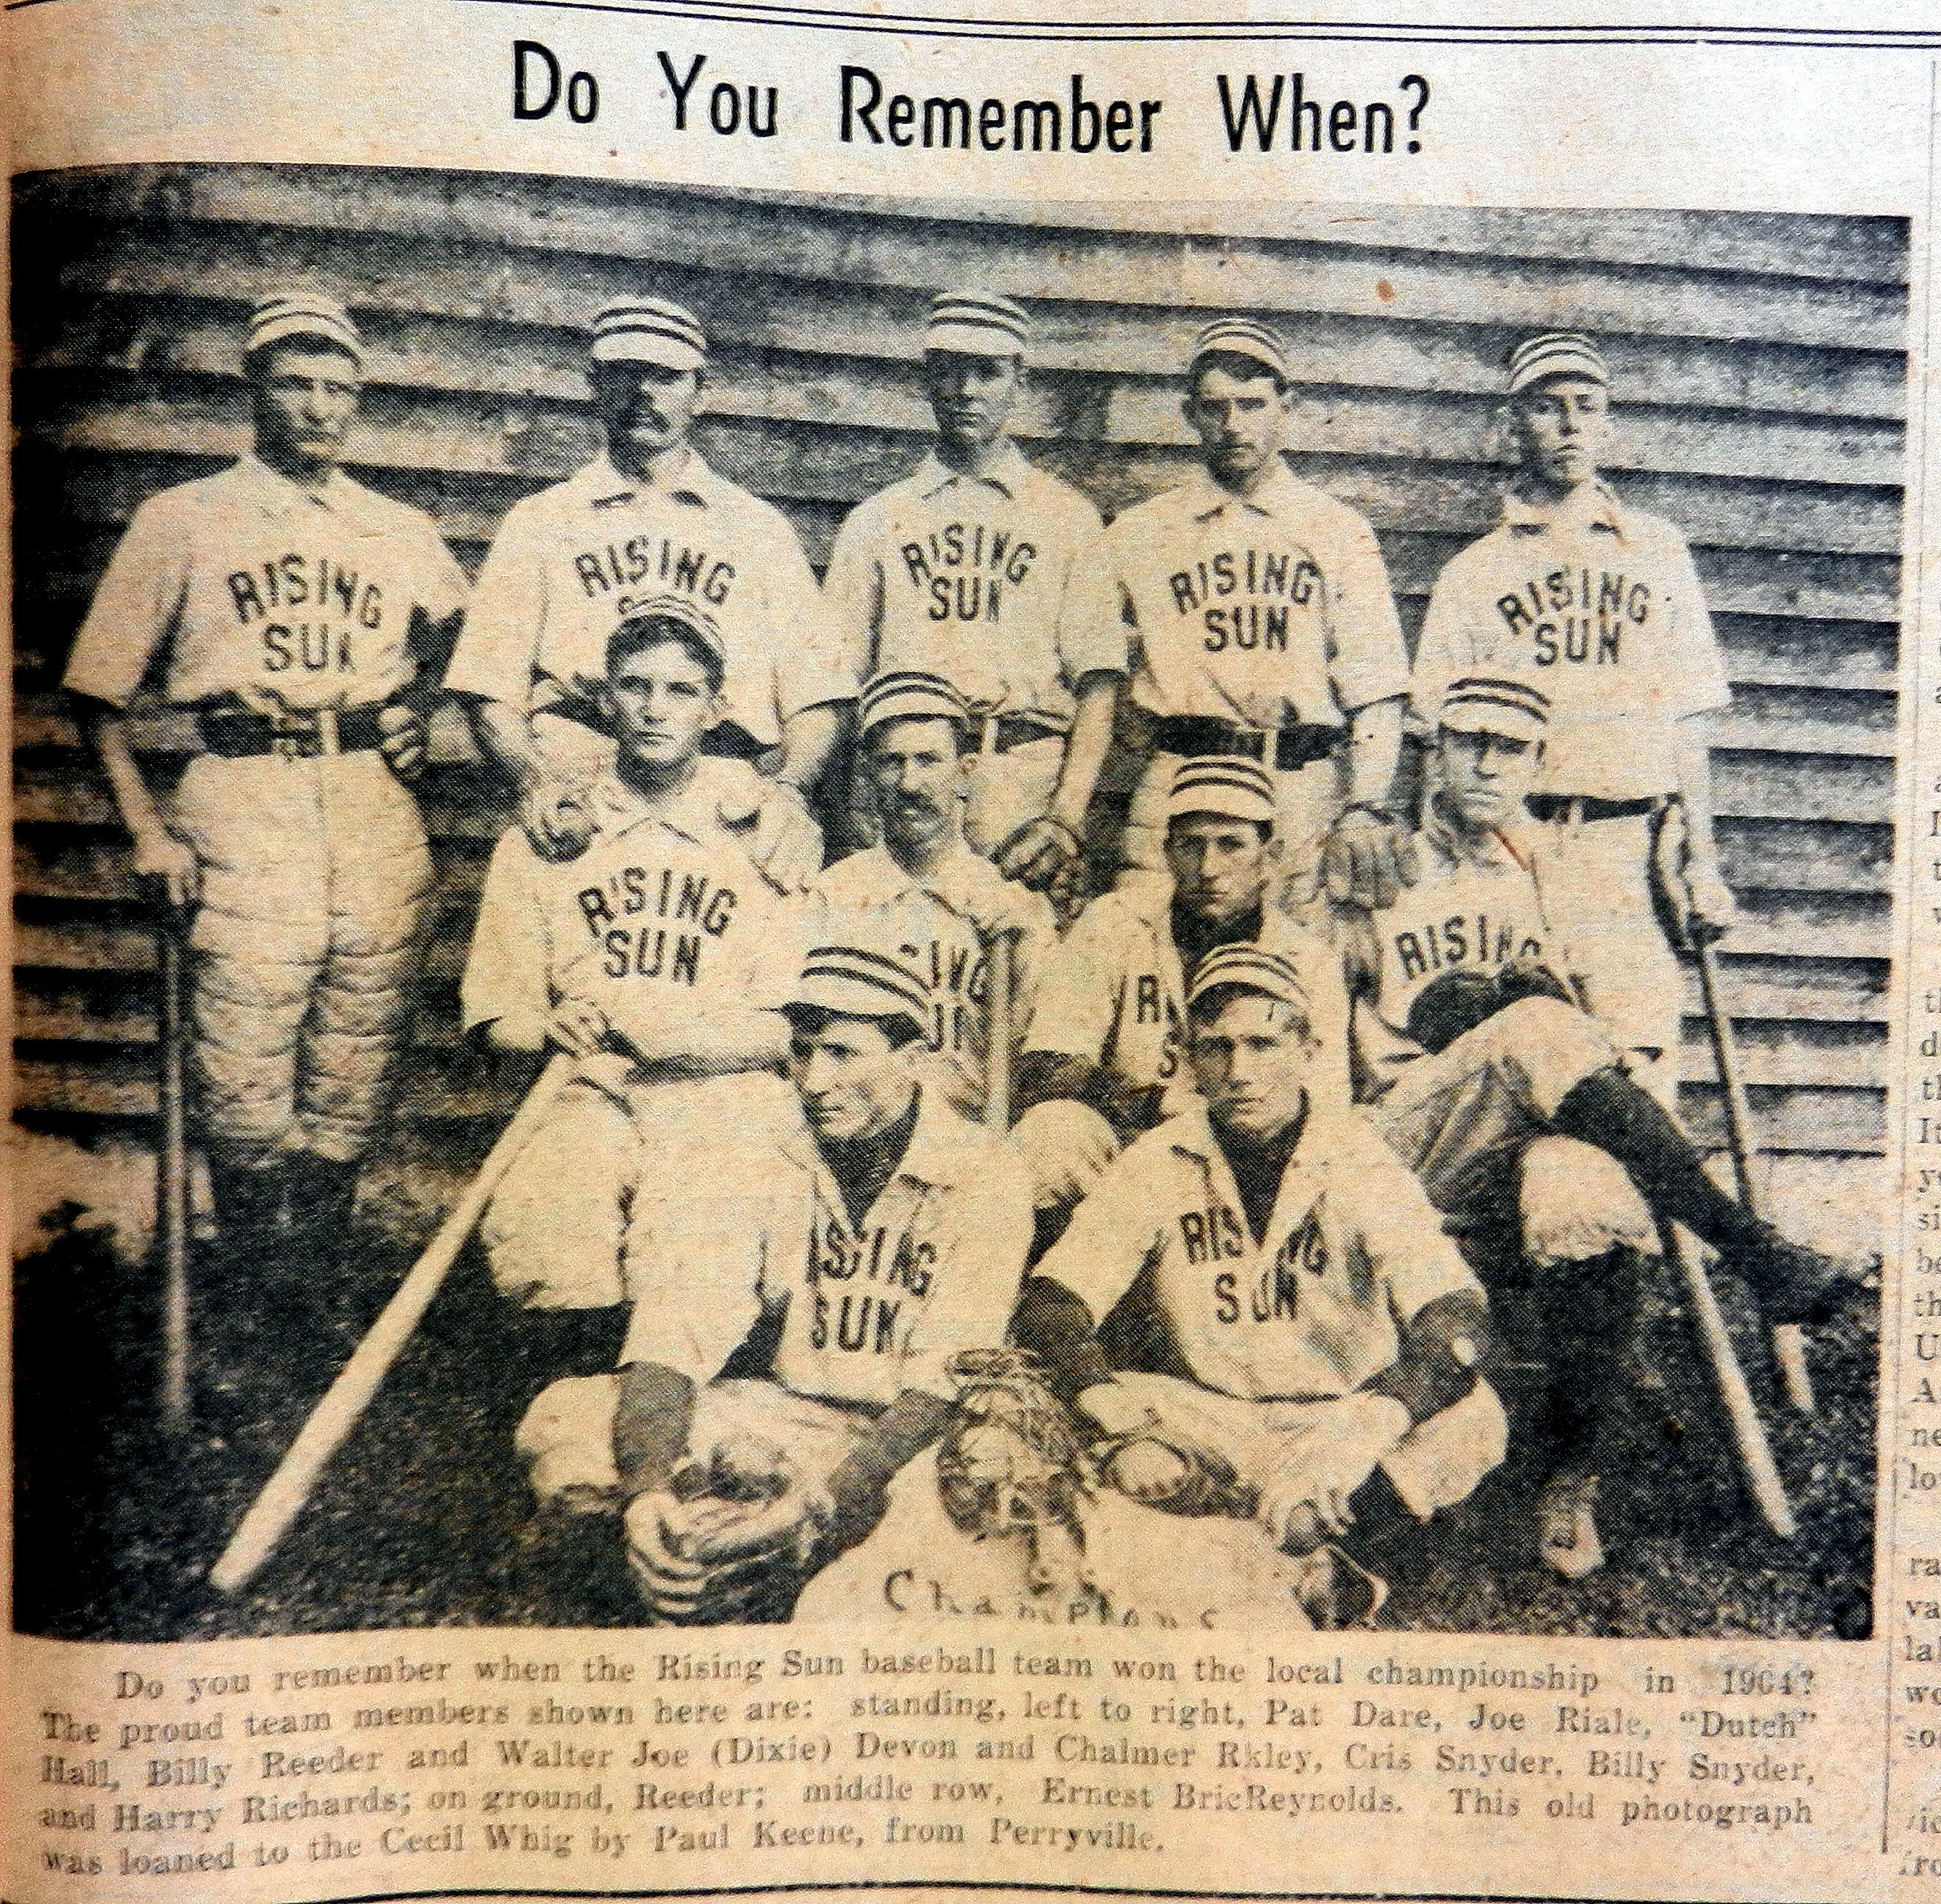 Whig Asks – Do You Remember the Rising Sun Baseball Team in 1904